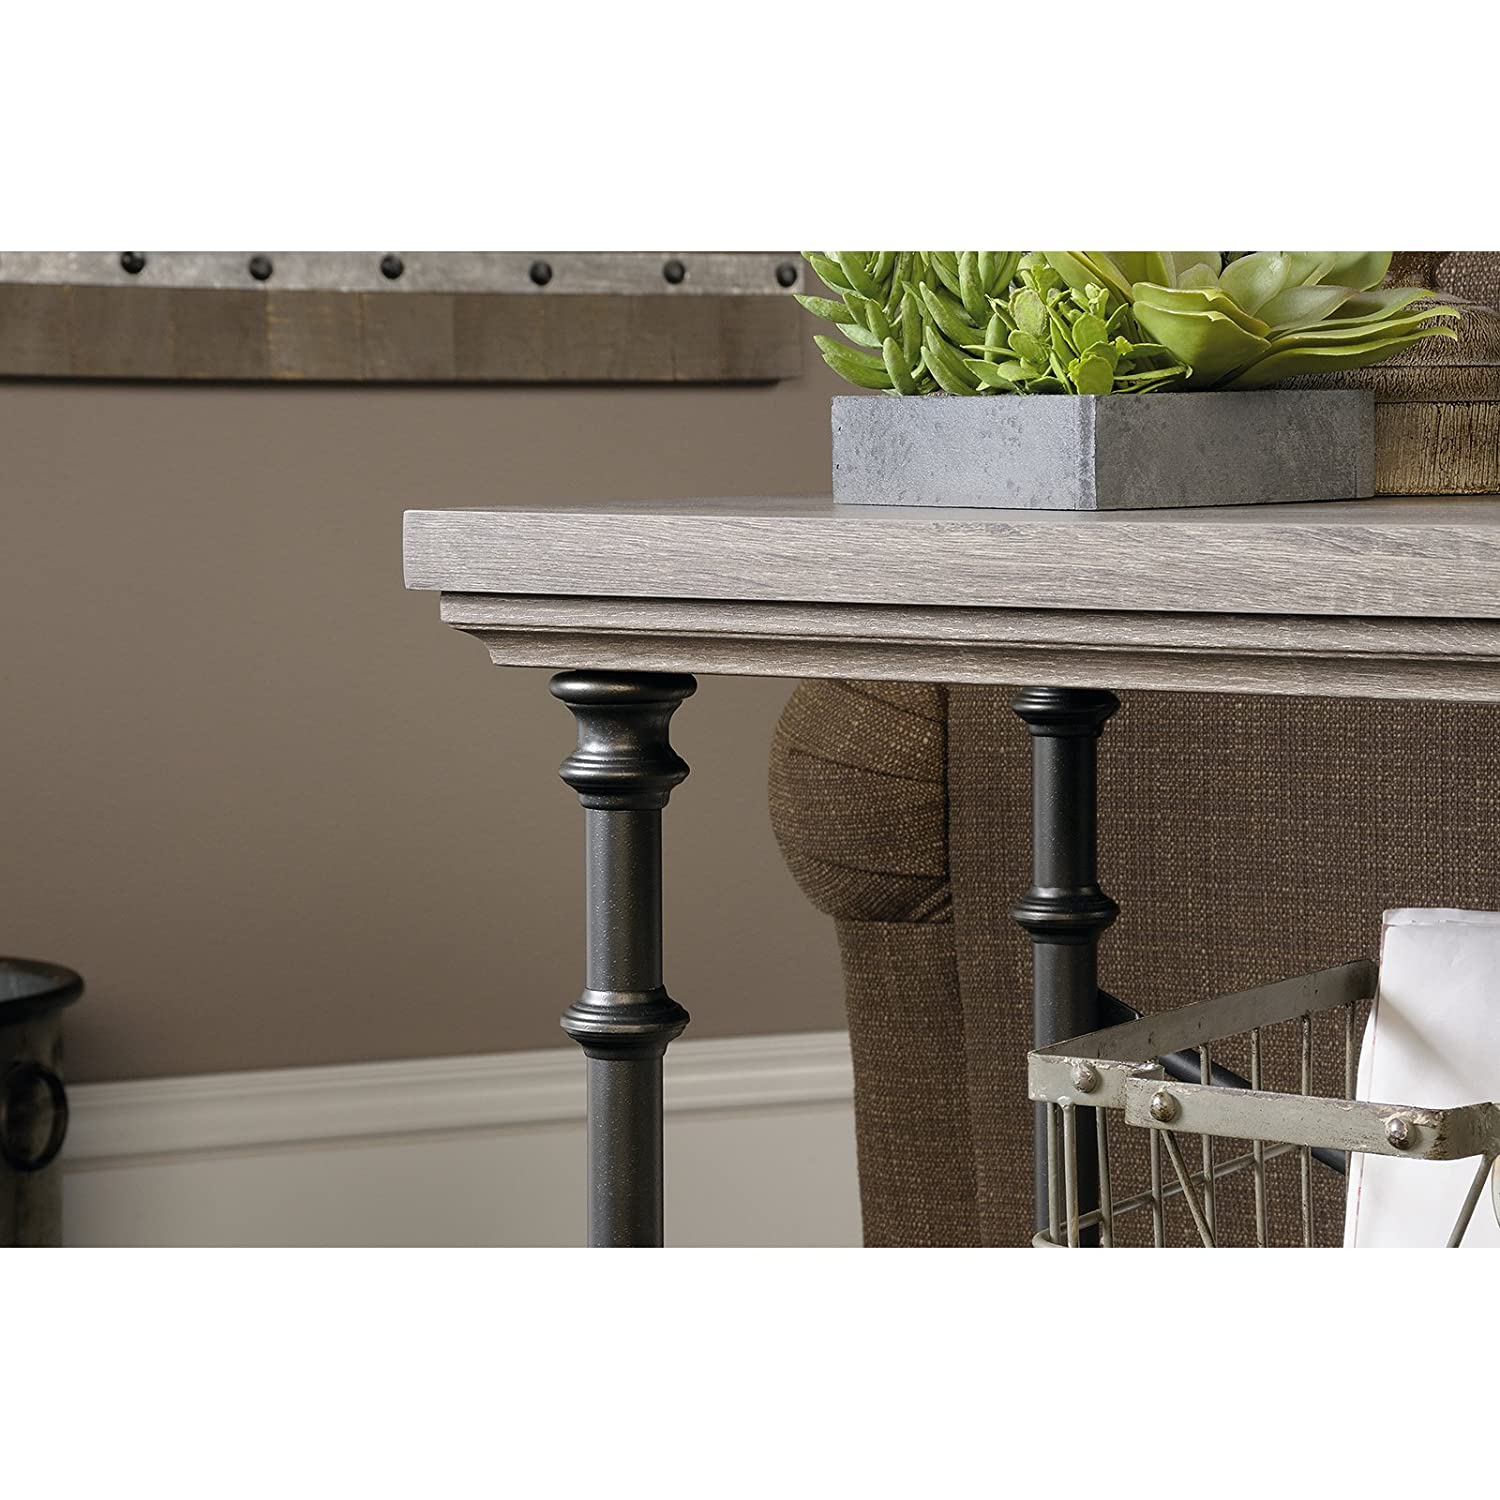 Amazon sauder canal street anywhere console table in northern amazon sauder canal street anywhere console table in northern oak kitchen dining geotapseo Image collections